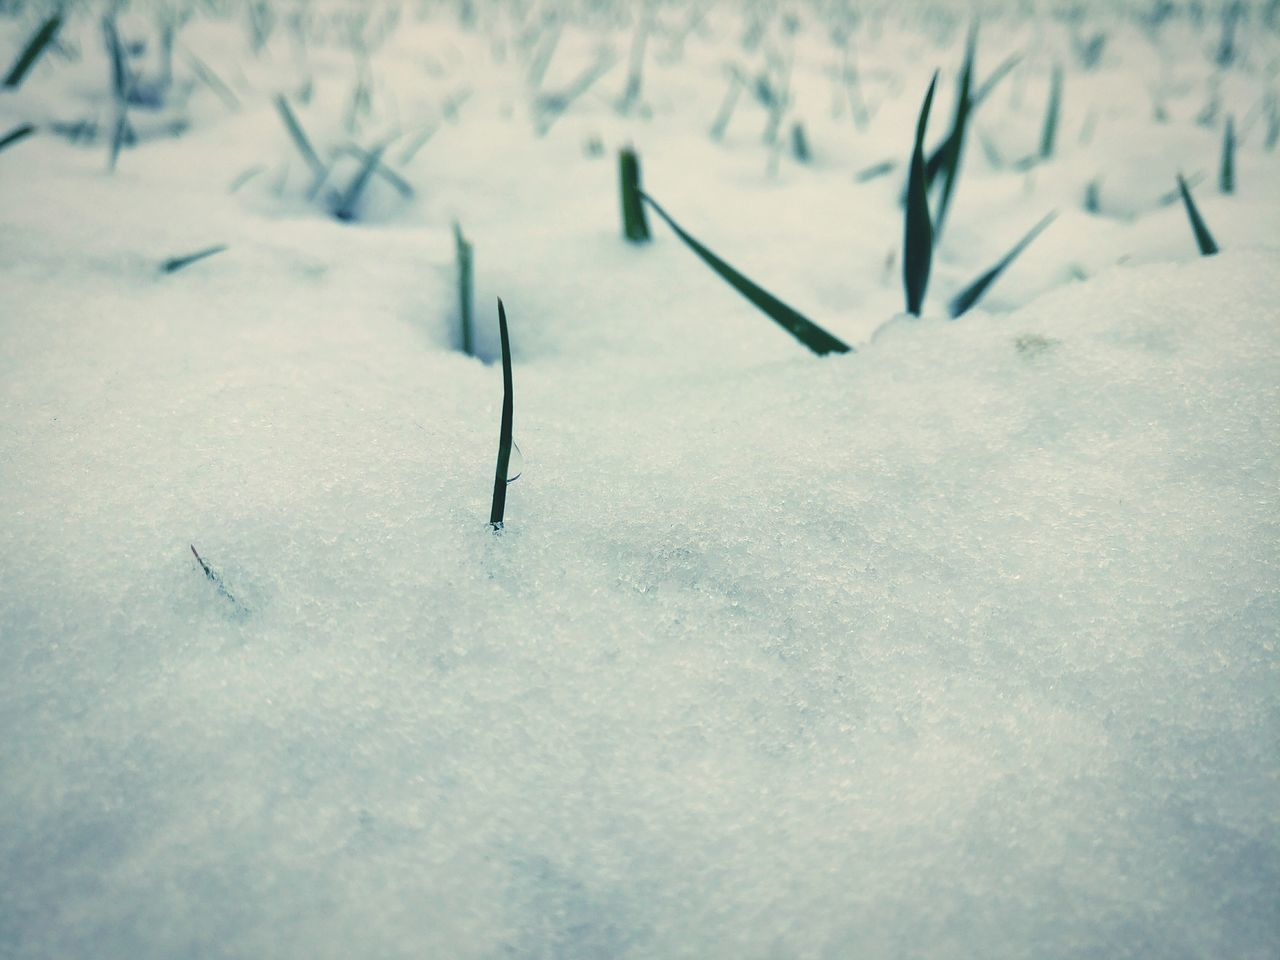 Nature Beauty In Nature Winter Cold Temperature Winter Is Coming Frozen Grass First Snow Of The Season